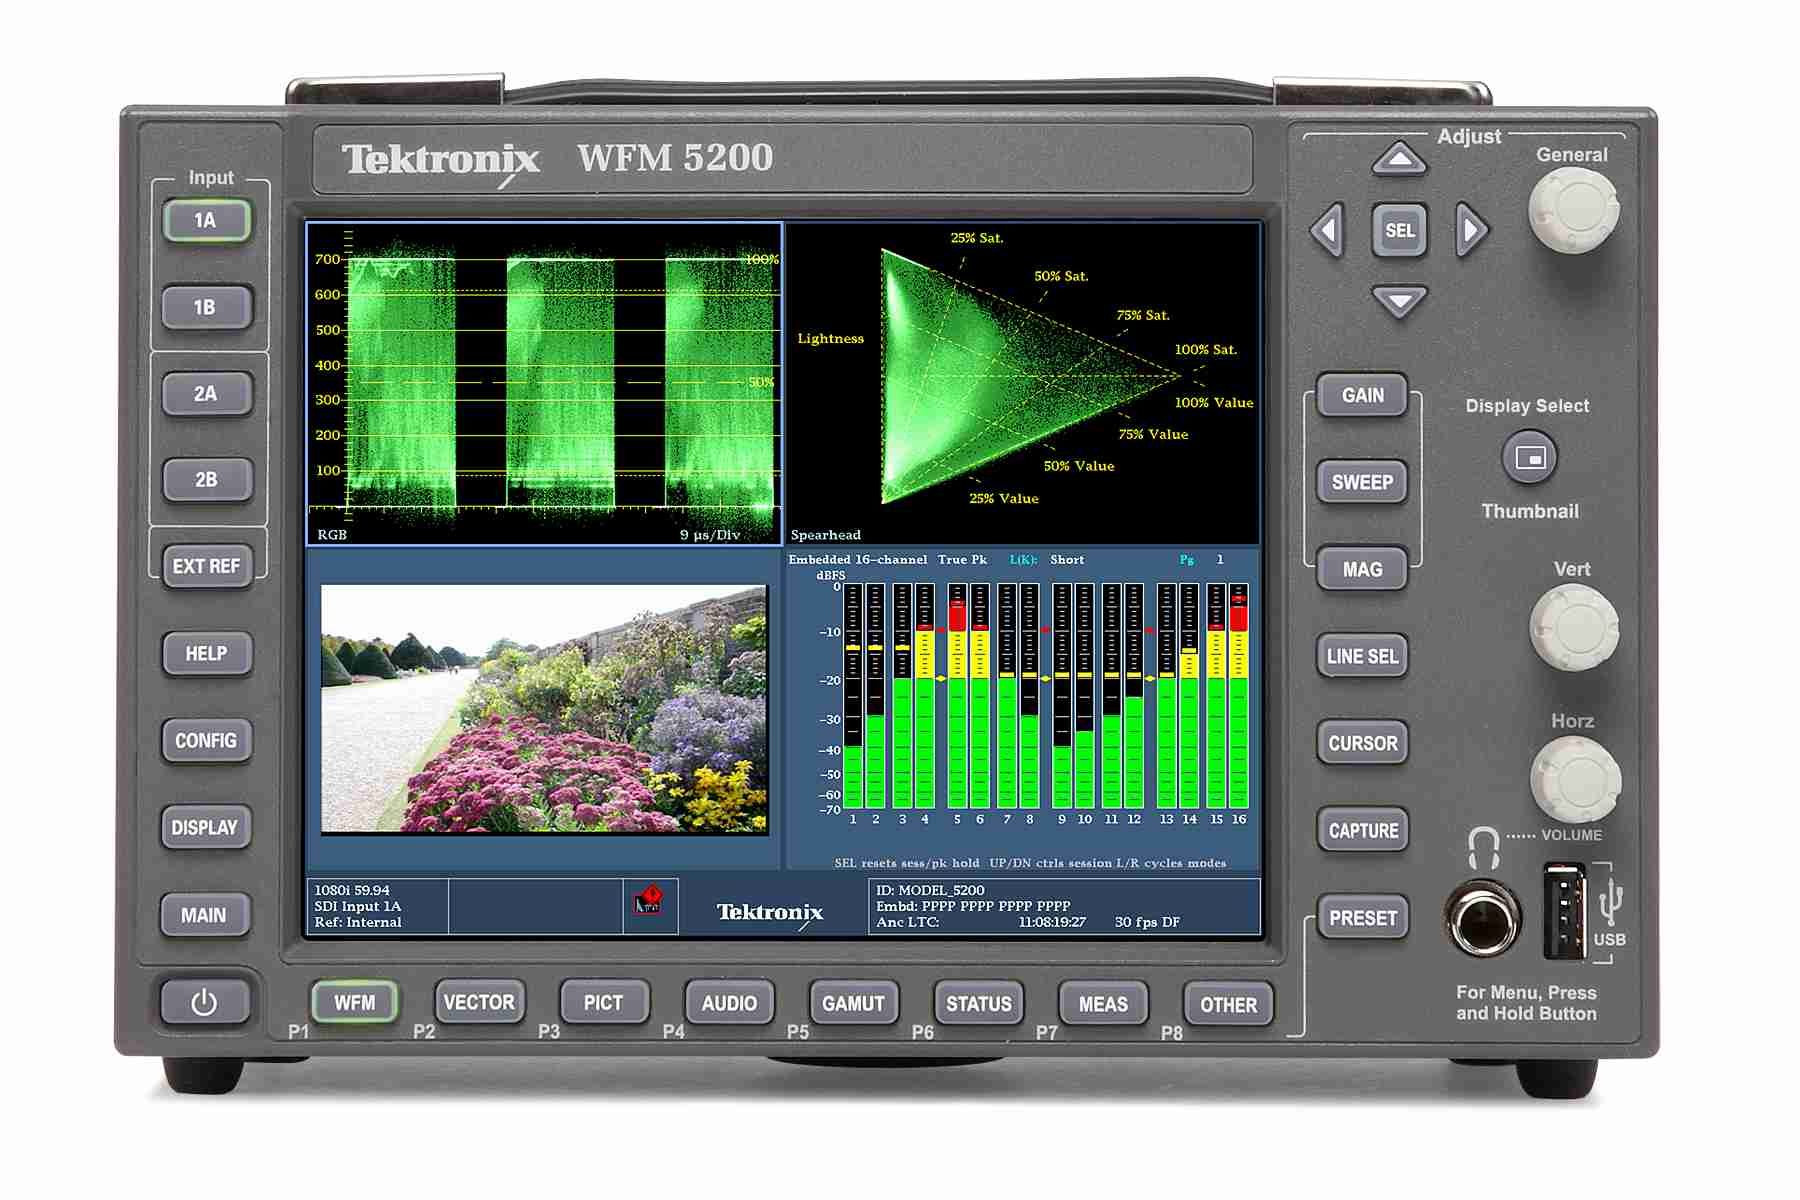 Tektronix WFM / WVR5000 Series Waveform Monitor